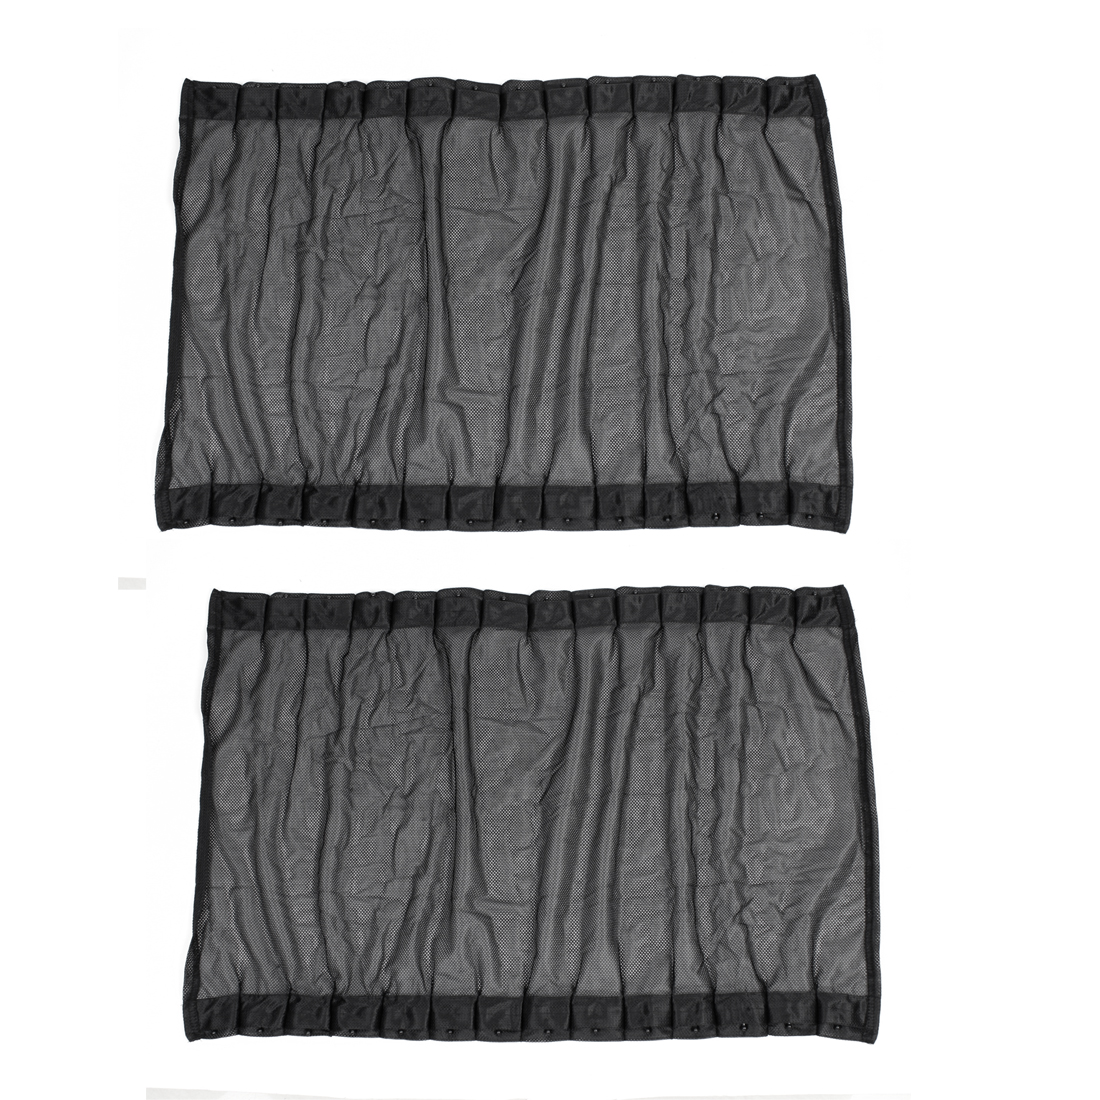 "2Pcs 27.6"" x 18.9"" Mesh Foldable Car Side Window Curtain Sun Shade Suction Cup Mounting Black"